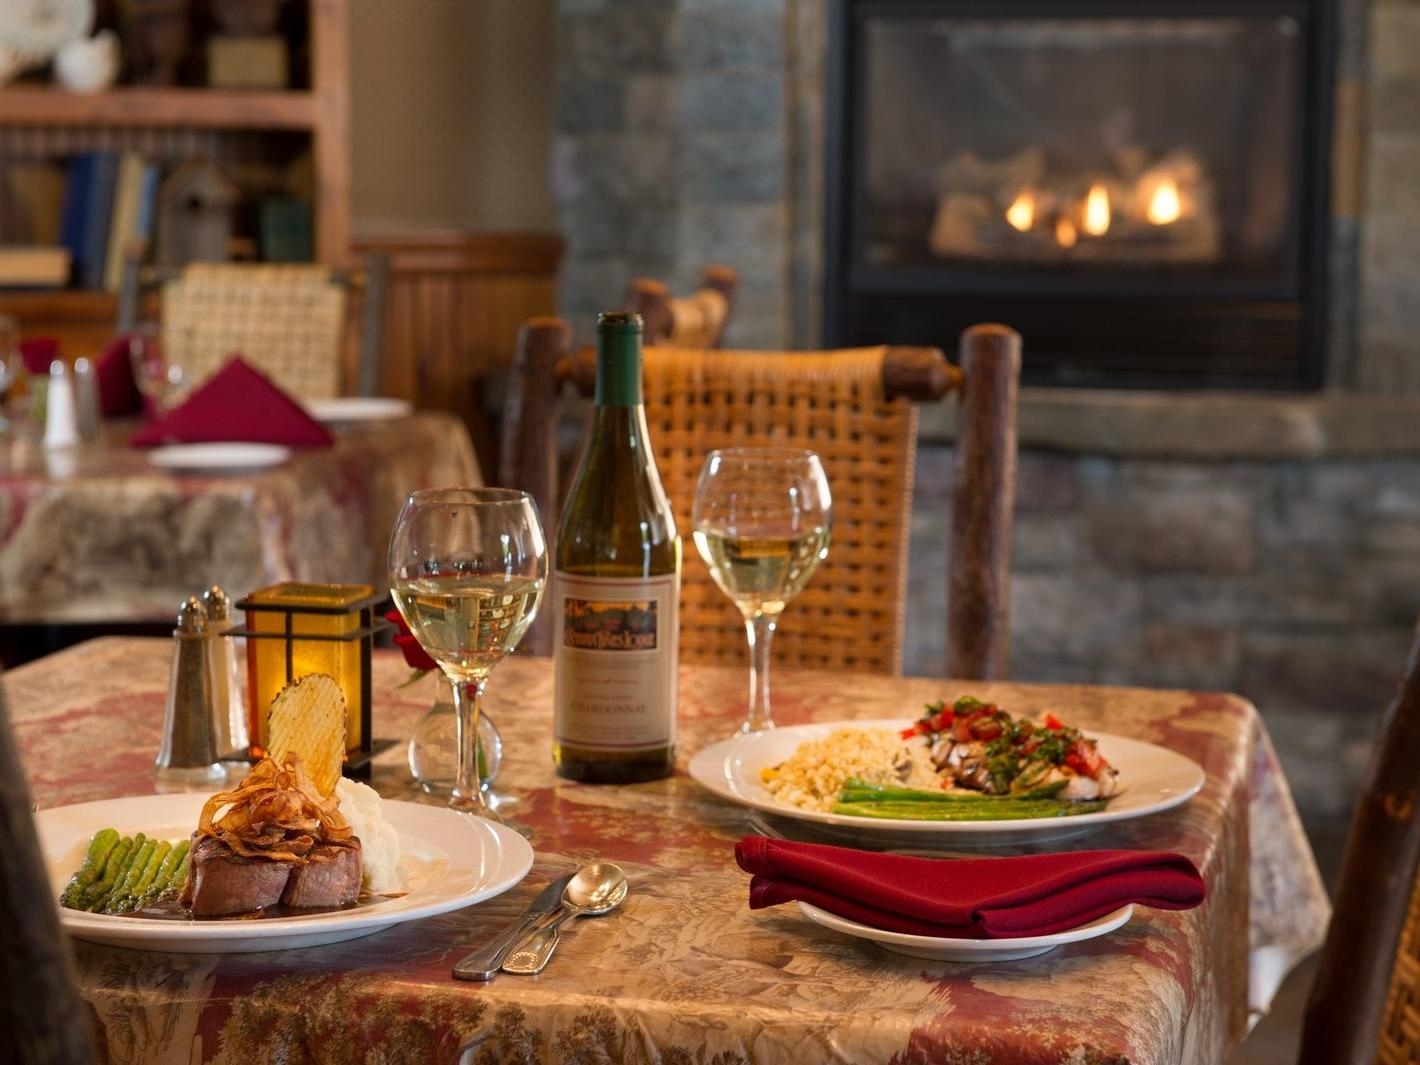 Dinner table with entrees and wine with a fireplace in the background